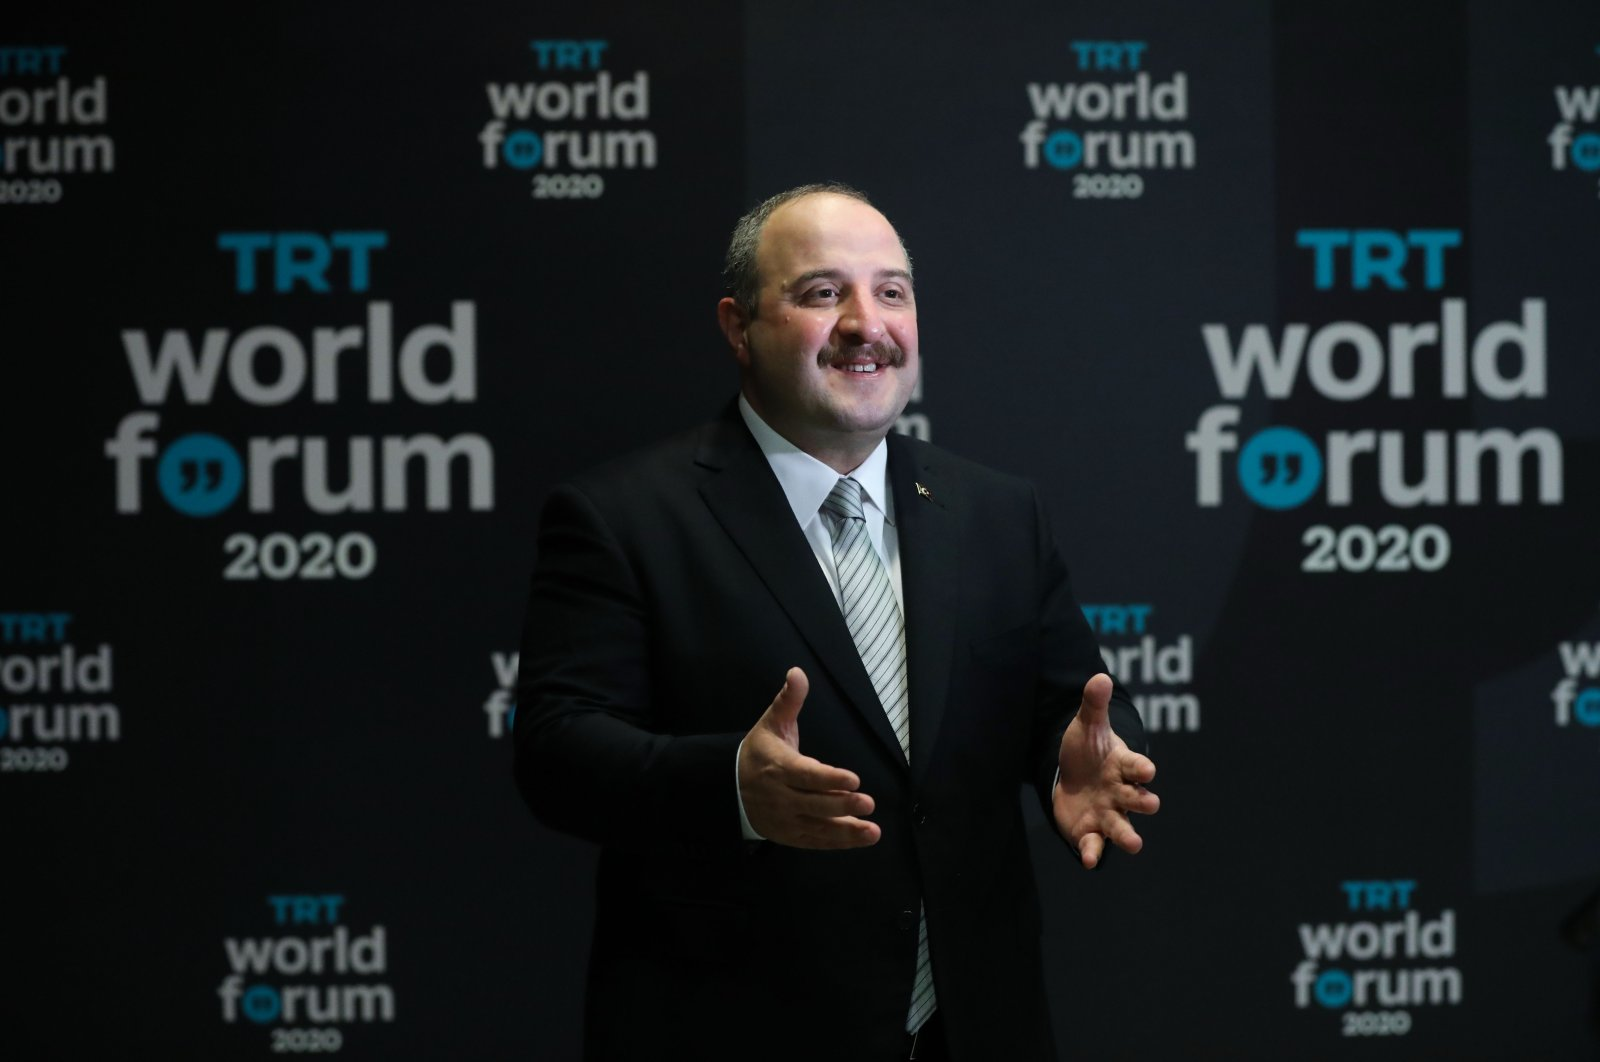 Industry and Technology Minister Mustafa Varank speaks at the TRT World Forum 2020 held online this year, Dec.1, 2020. (AA Photo)